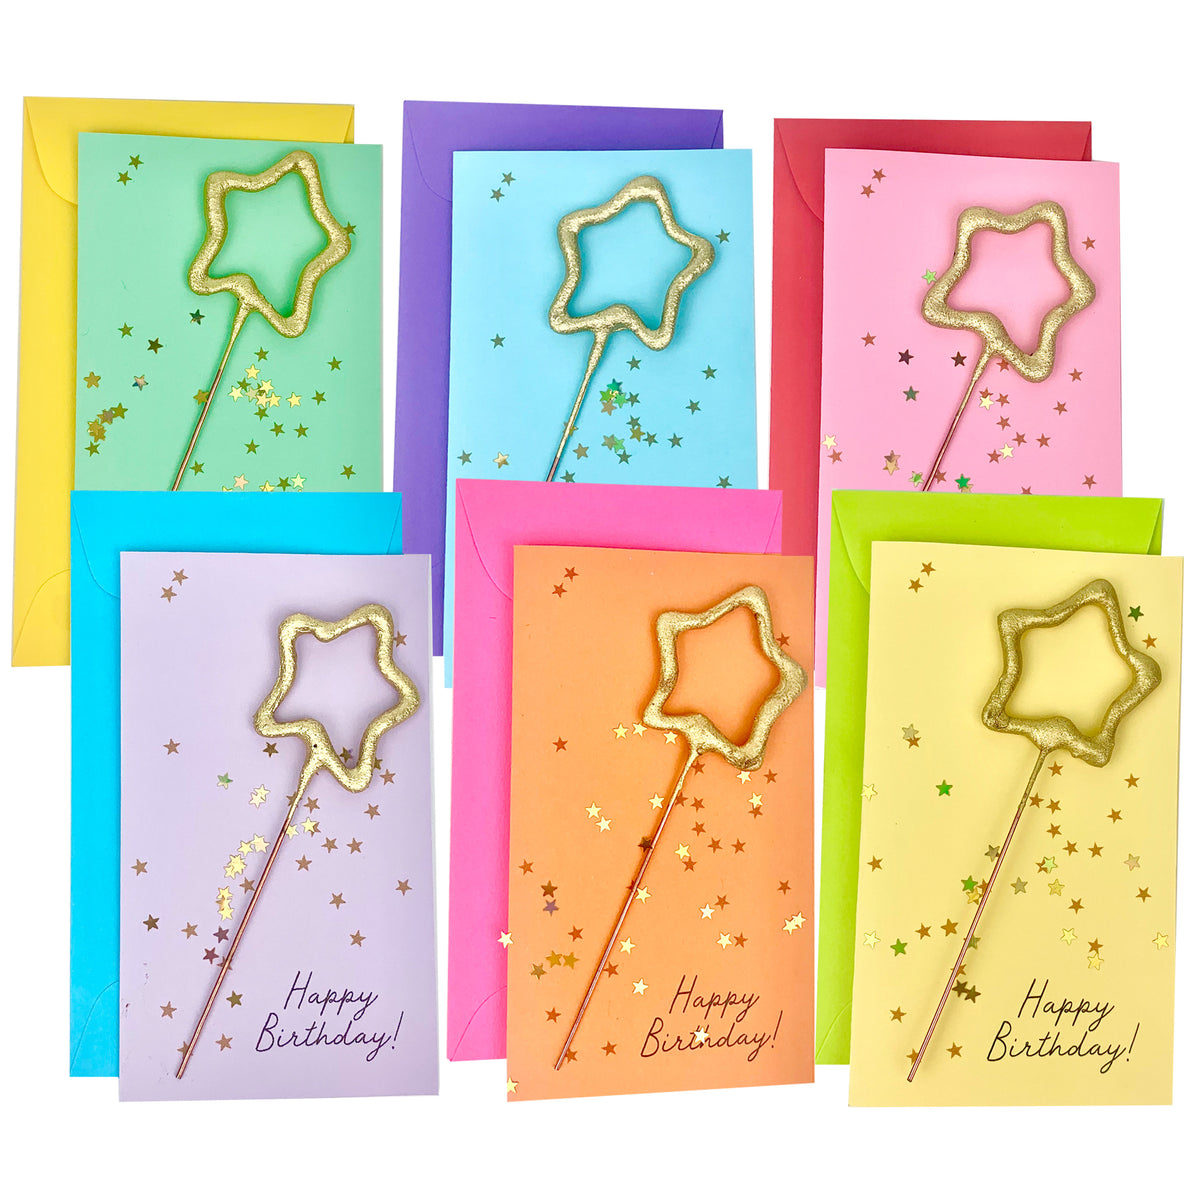 Confetti Sparkler Cards Happy Birthday!